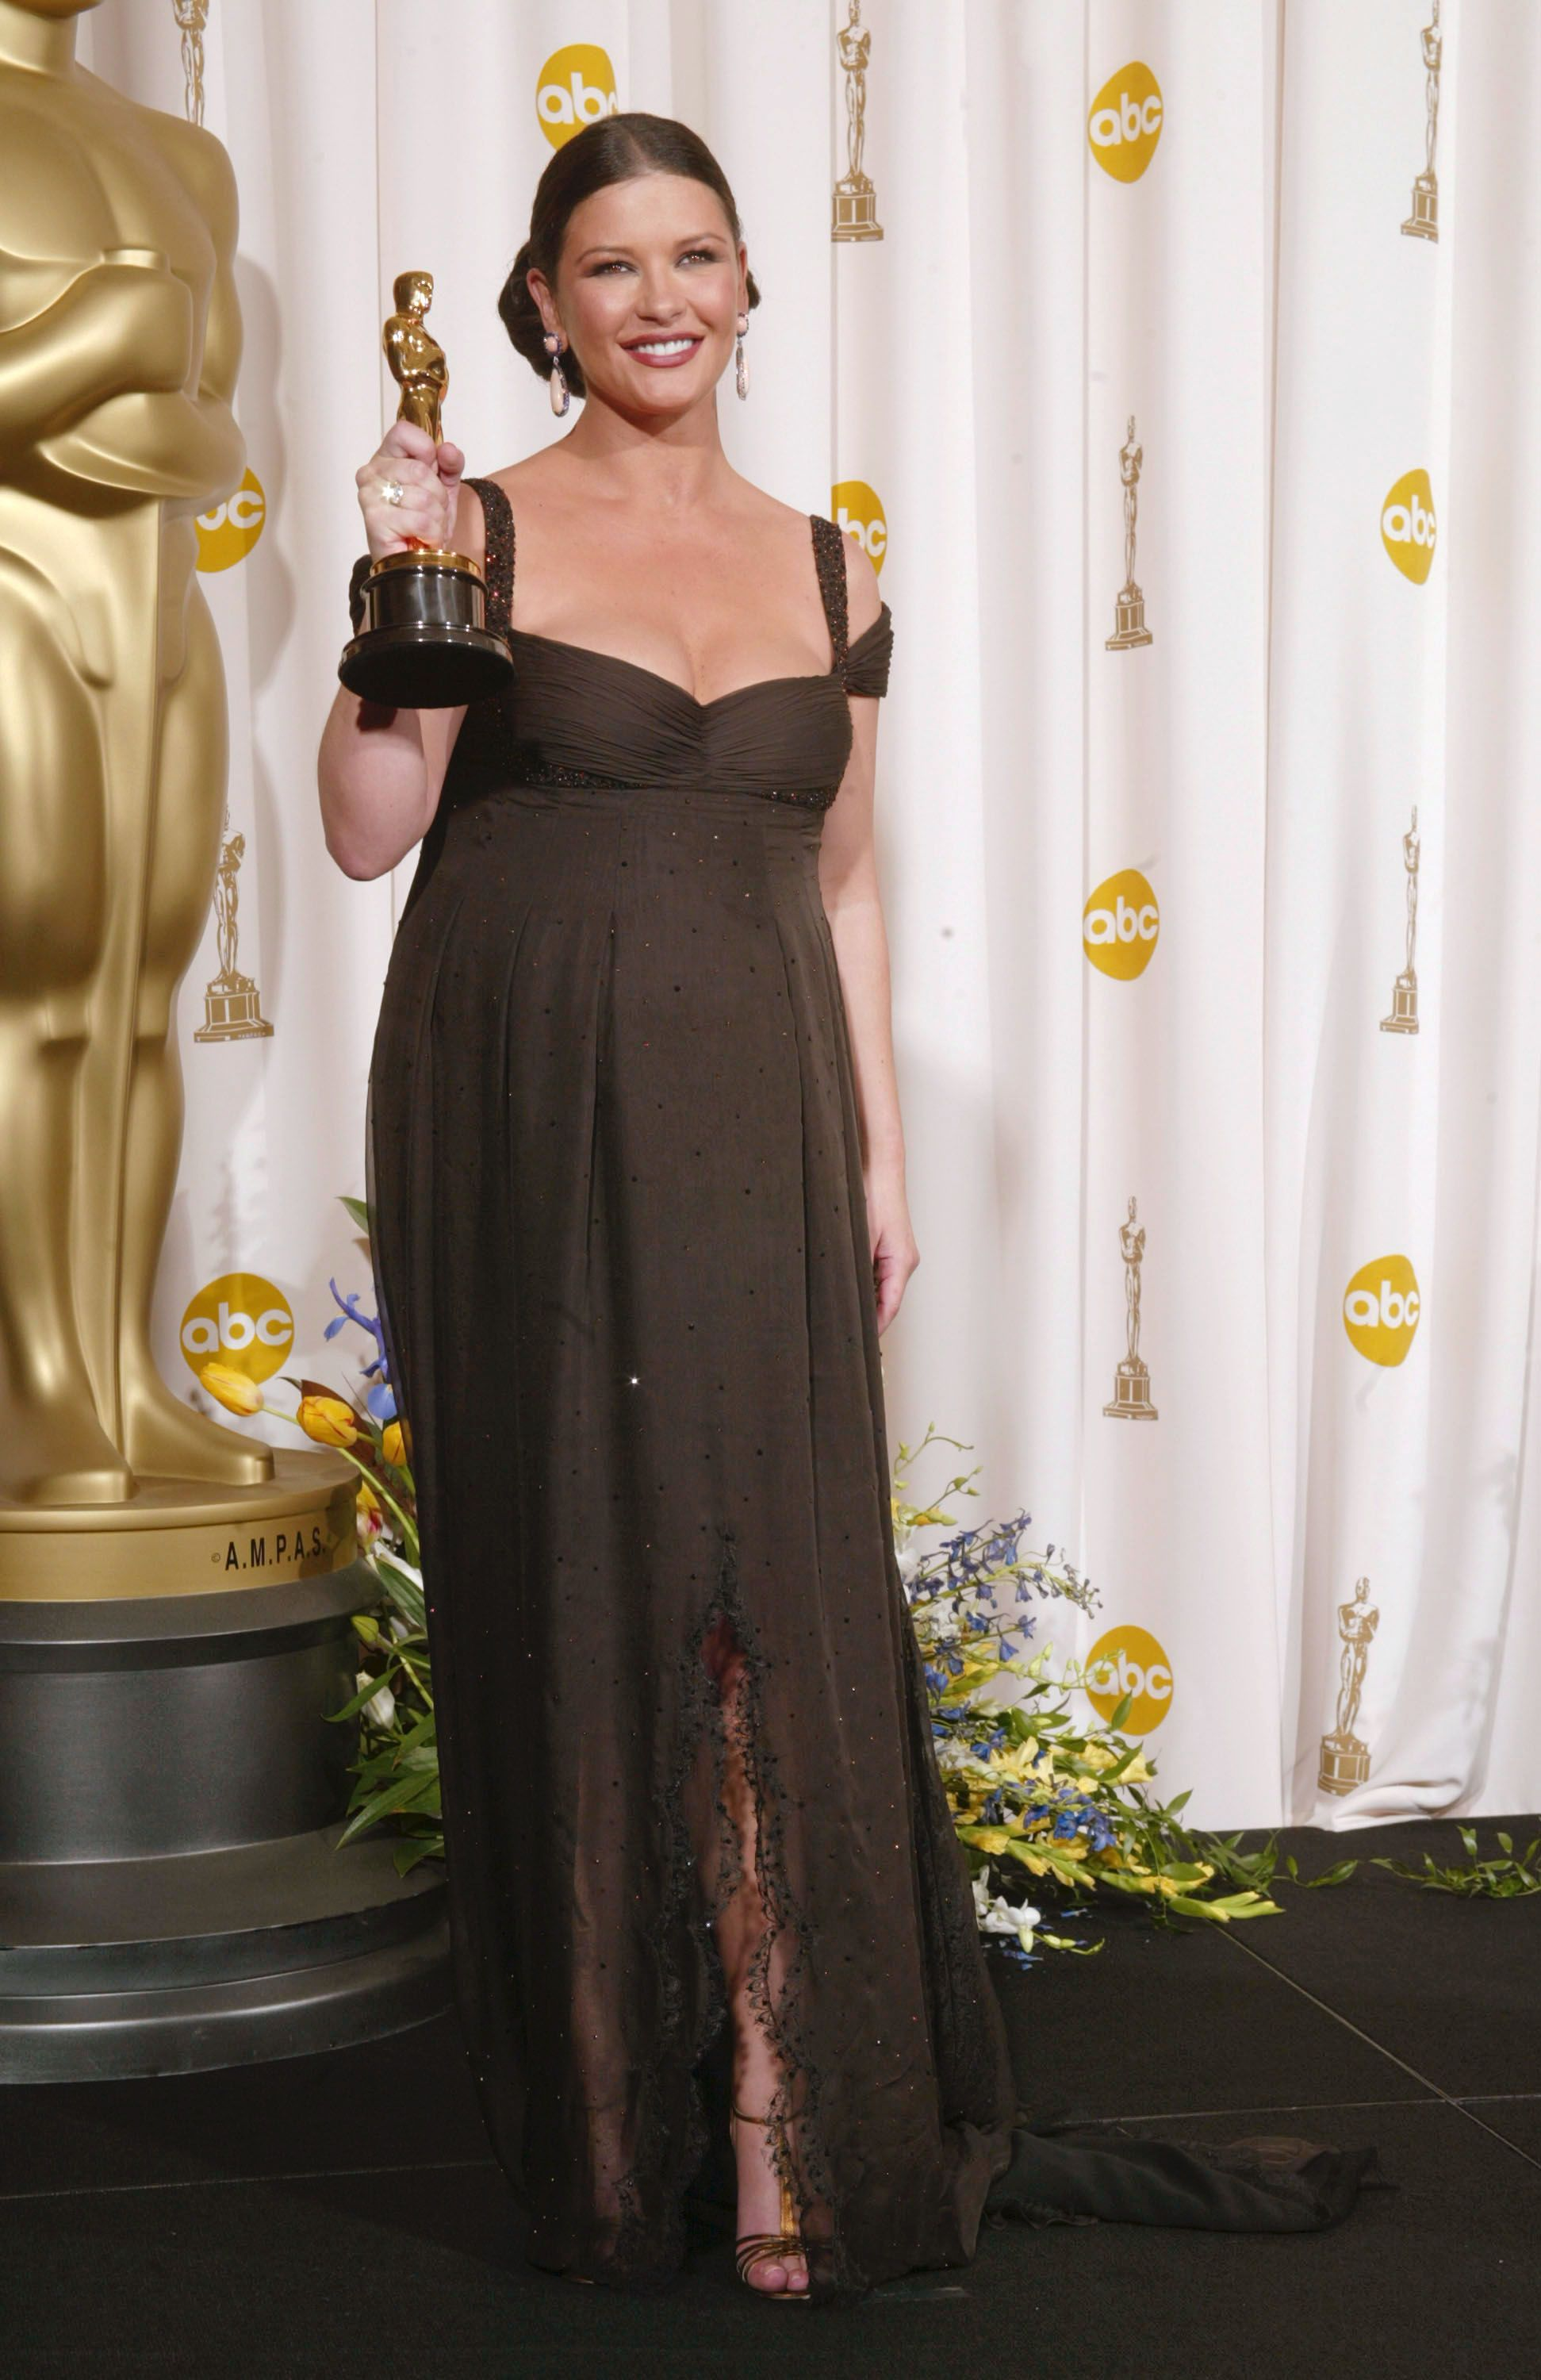 Catherine Zeta-Jones poses backstage during the 75th Annual Academy Awards on March 23, 2003, in Hollywood, California | Photo: Robert Mora/Getty Images